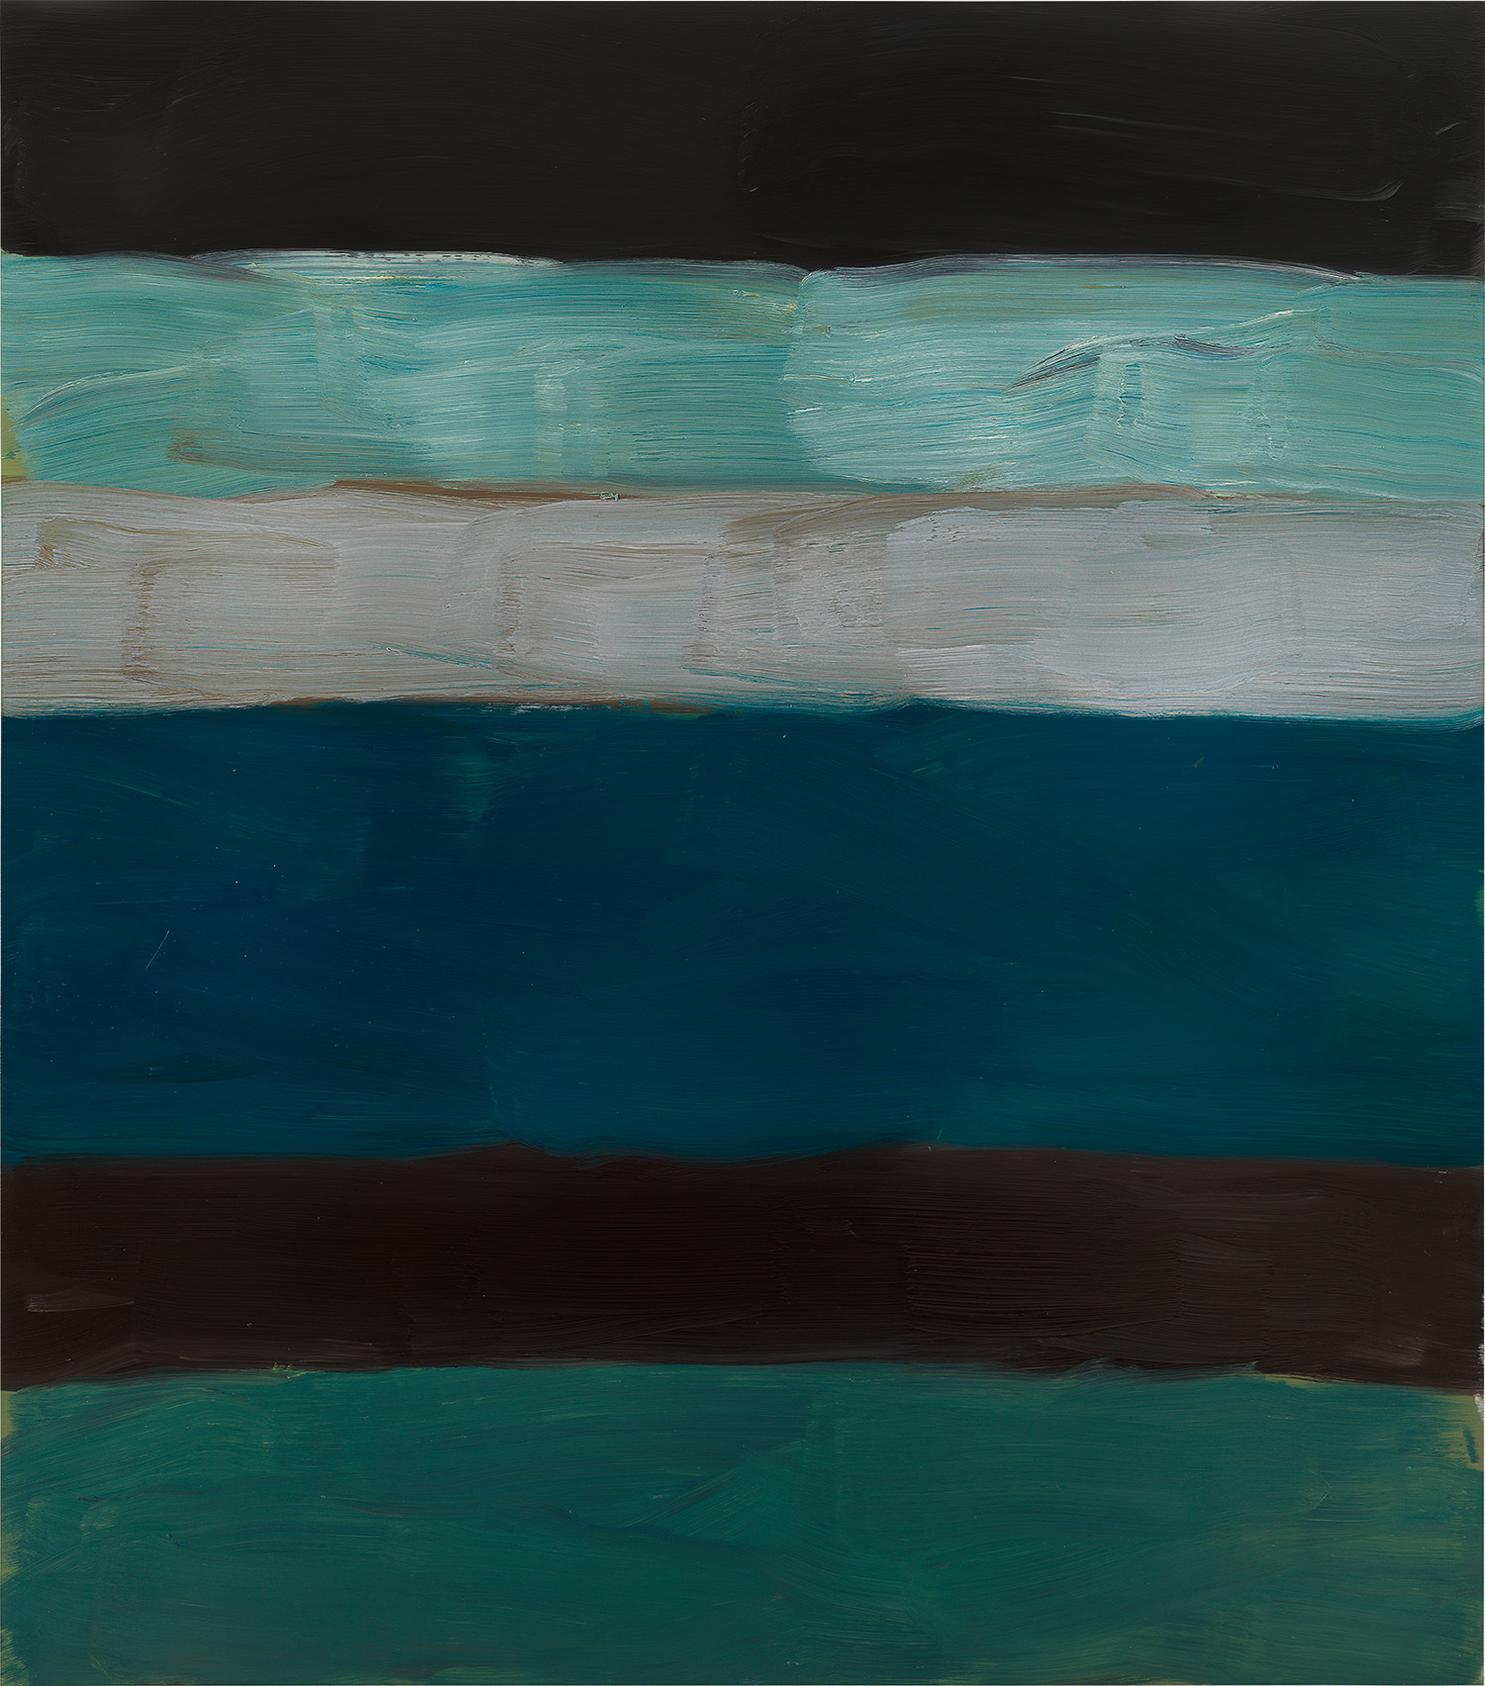 Sean Scully-Landline Green Sea-2014